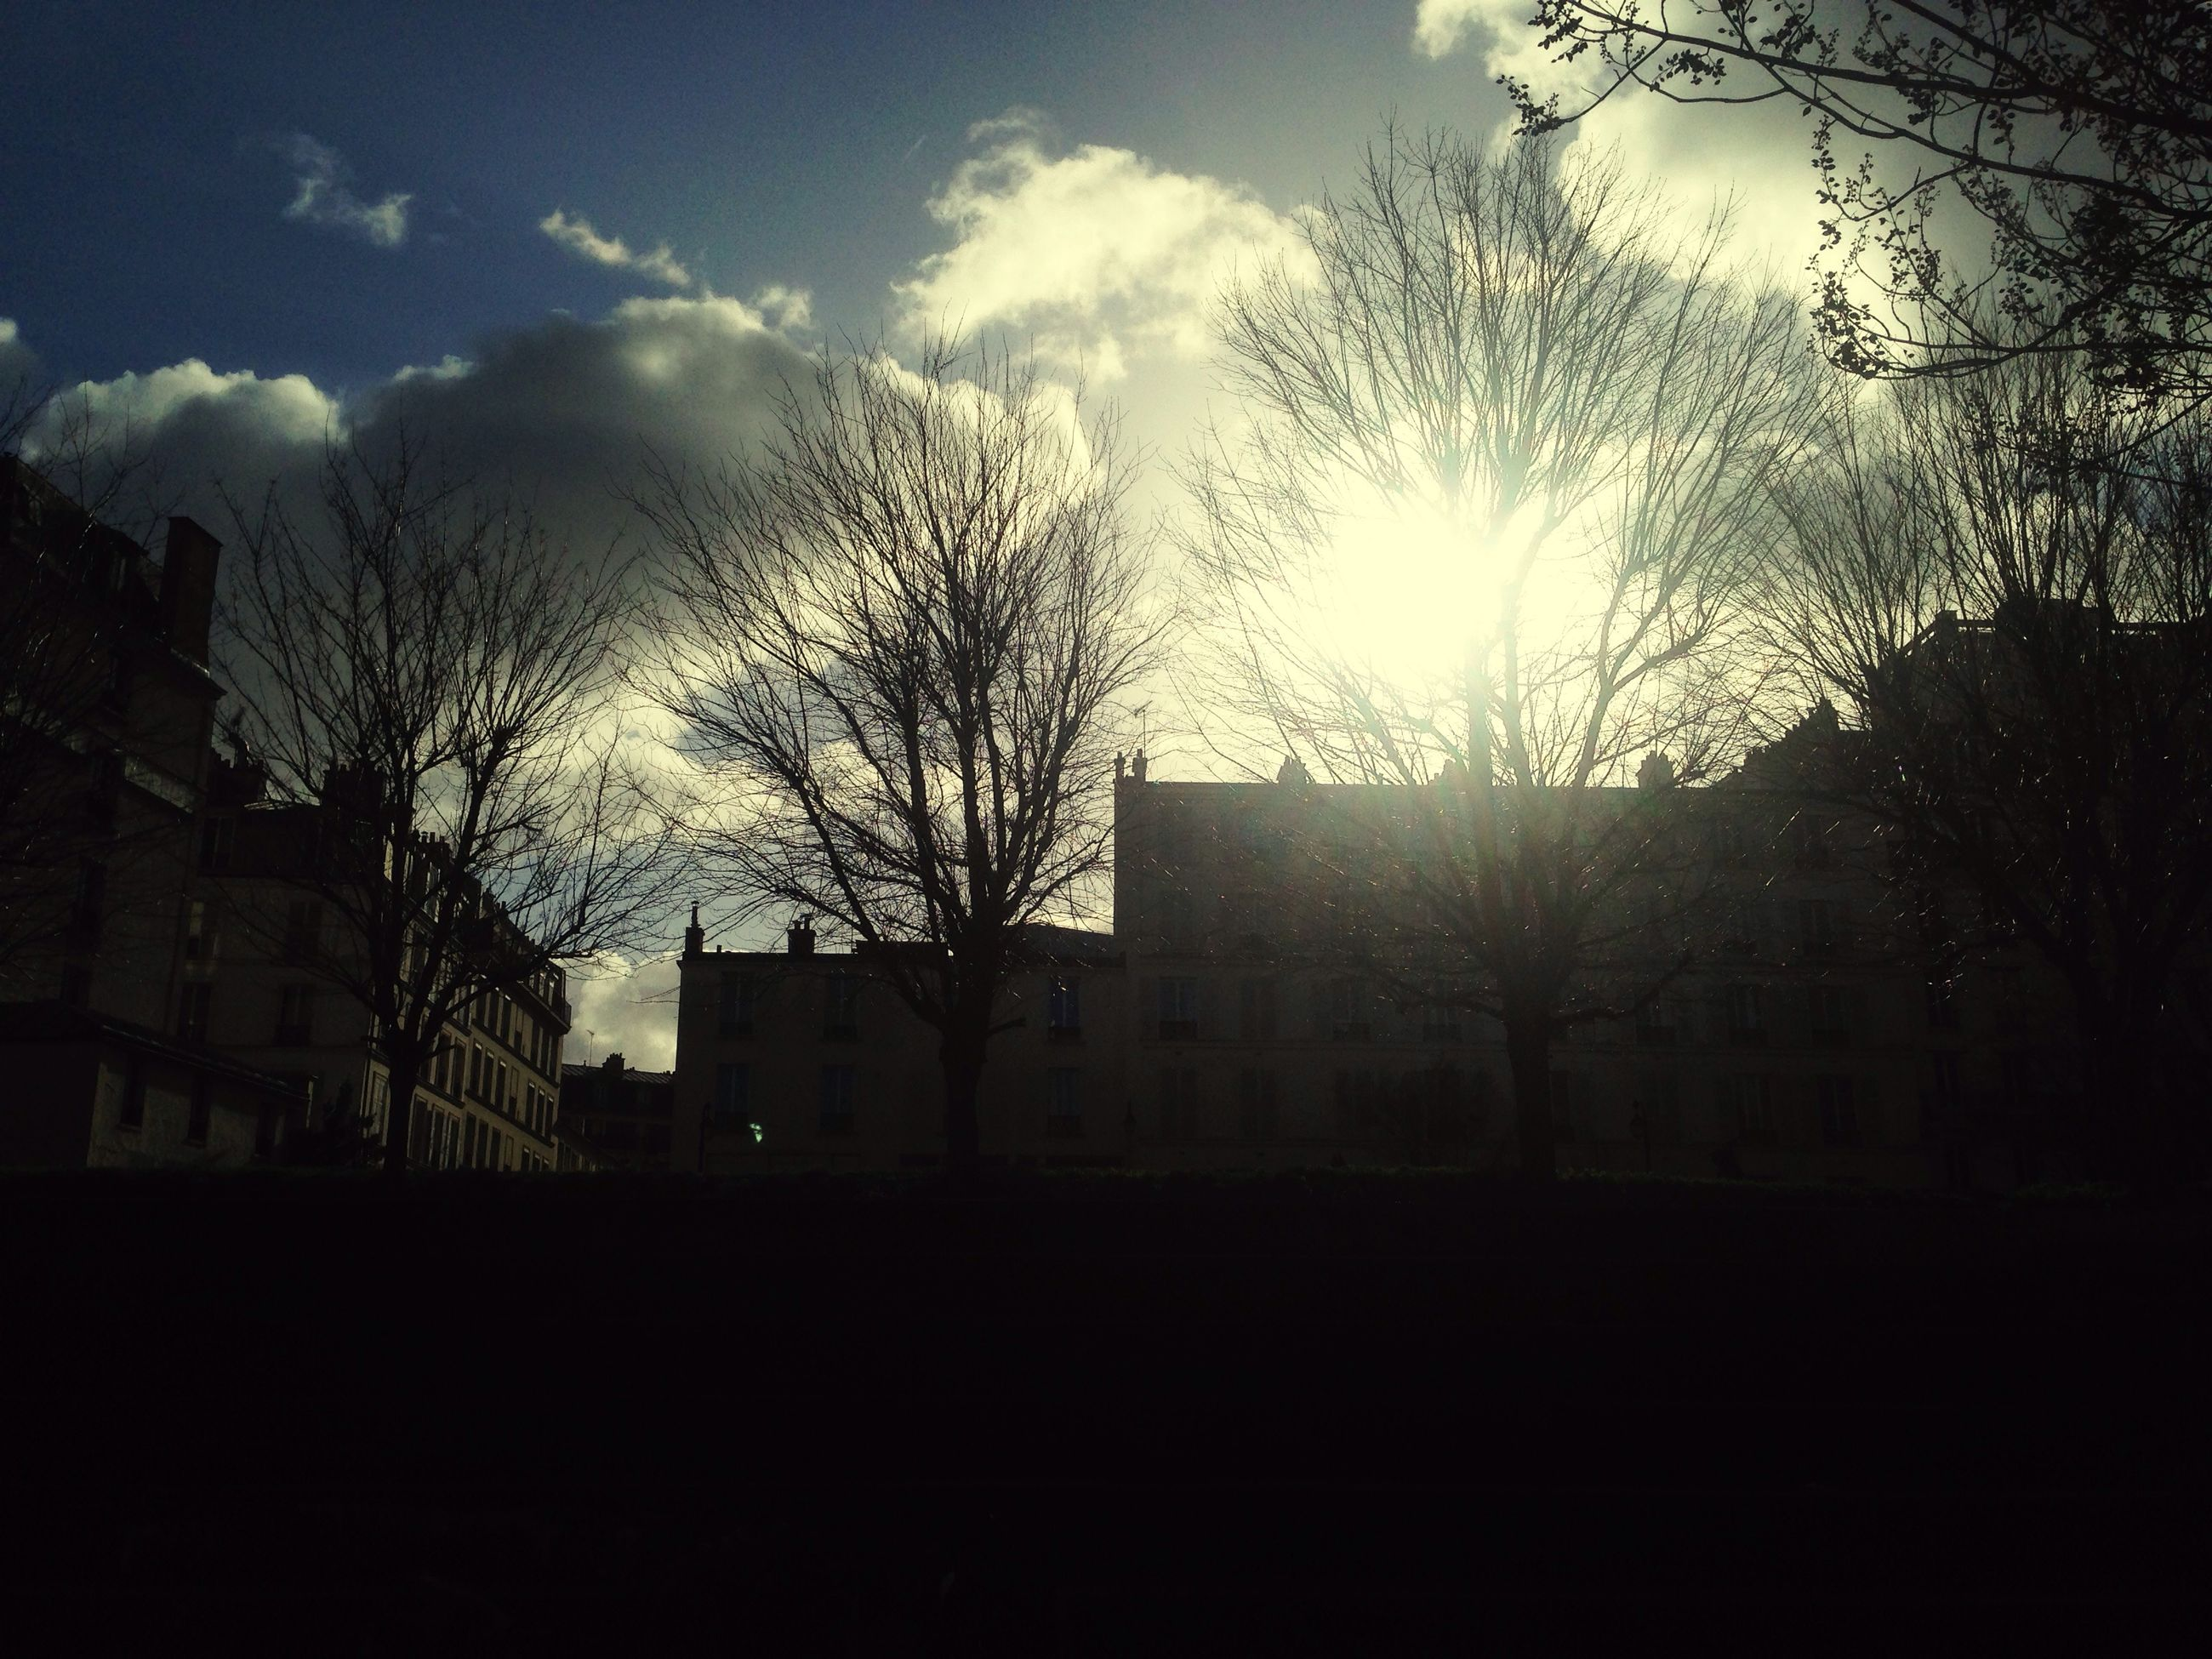 building exterior, architecture, built structure, silhouette, bare tree, sky, tree, sunset, house, cloud - sky, residential building, building, sunlight, residential structure, city, low angle view, dark, sun, no people, branch